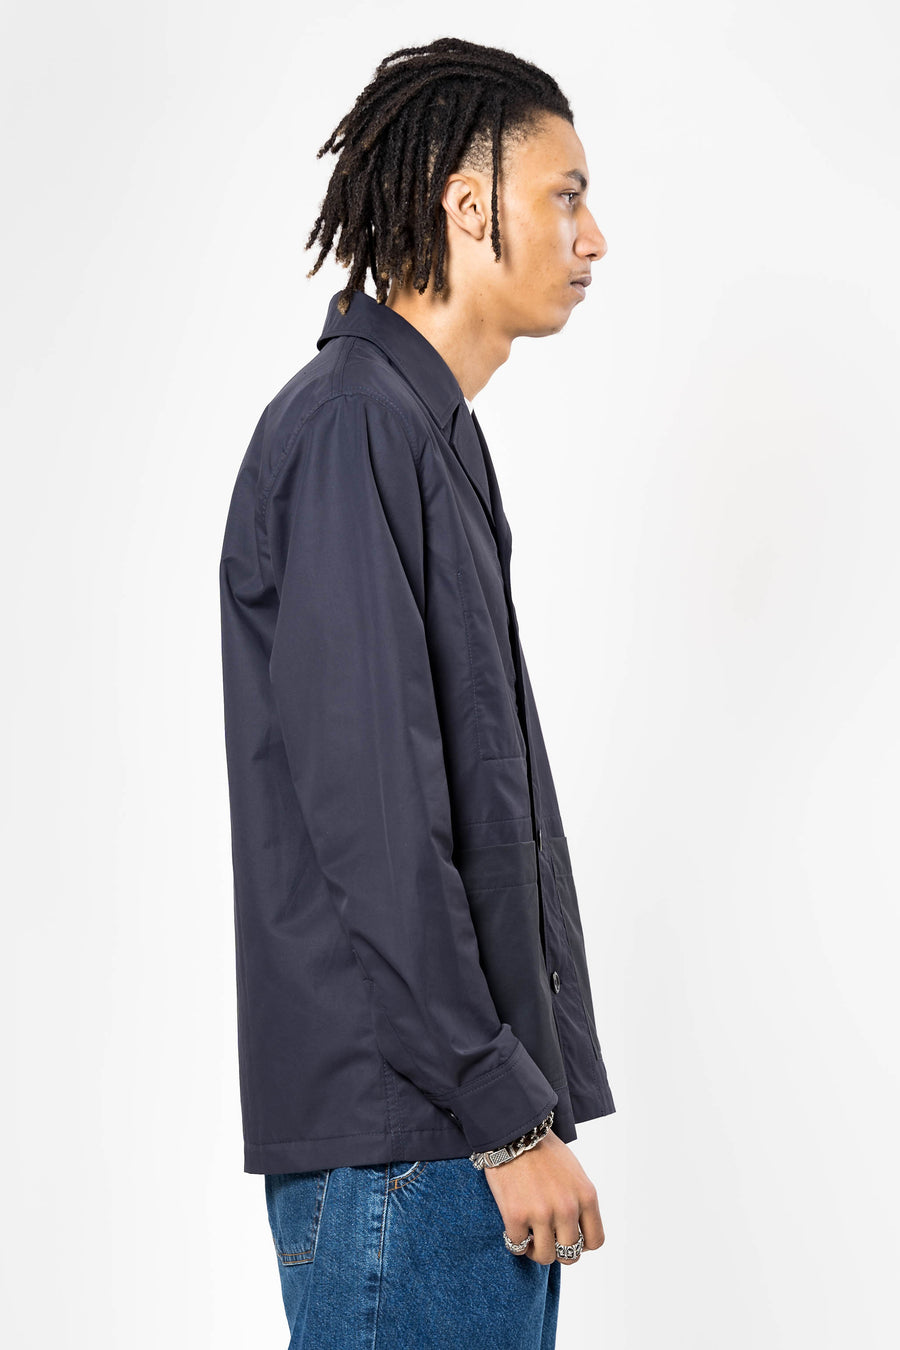 NORSE PROJECTS Mads 60/40 Cotton Nylon Dark Navy | HAVN